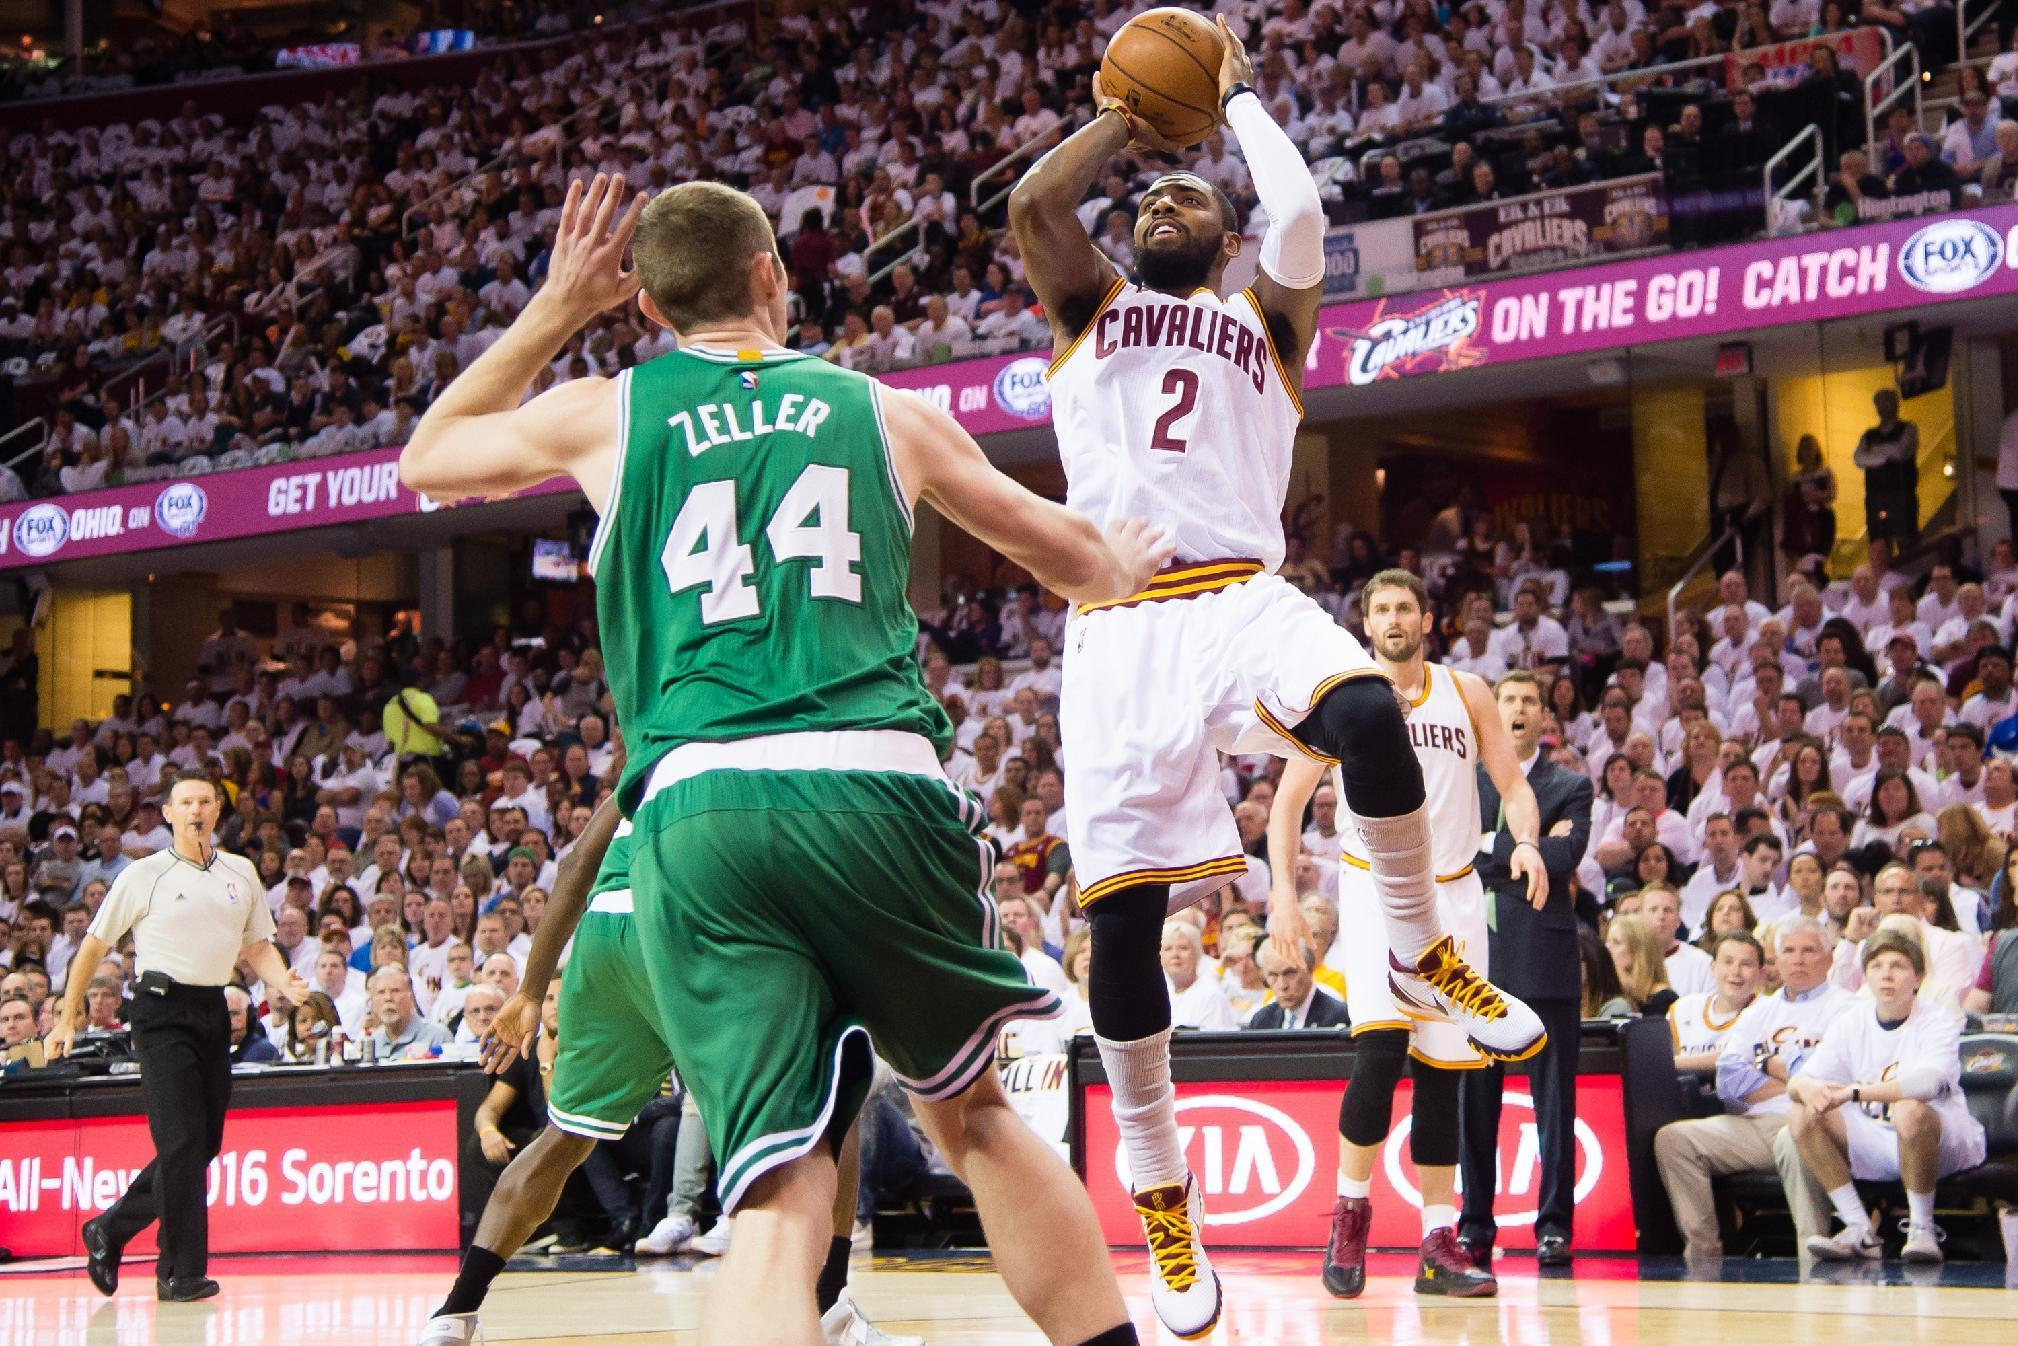 Kyrie Irving scores 30 in playoff debut to lead Cavs past Celtics in Game 1